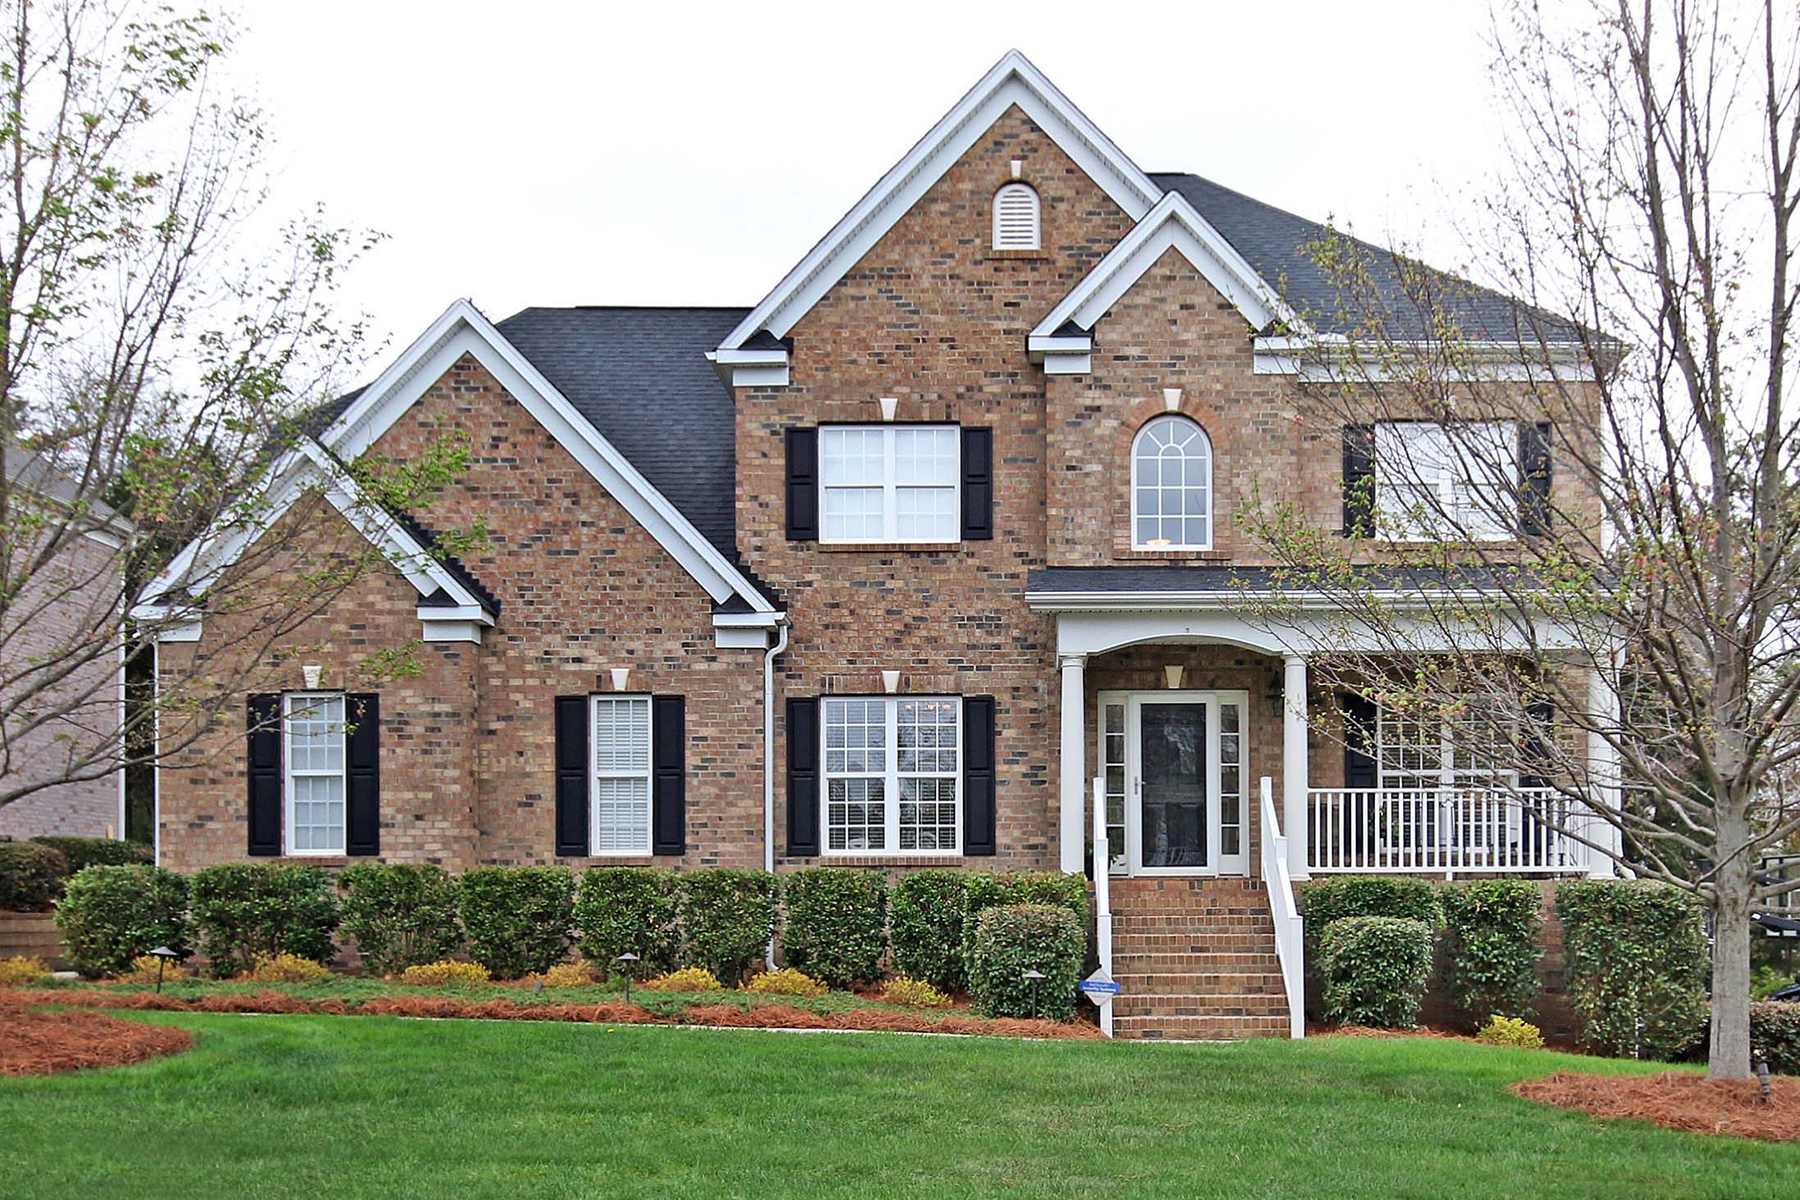 Single Family Home for Sale at SKYBROOK 10428 Spring Tree Ln Huntersville, North Carolina, 28078 United States